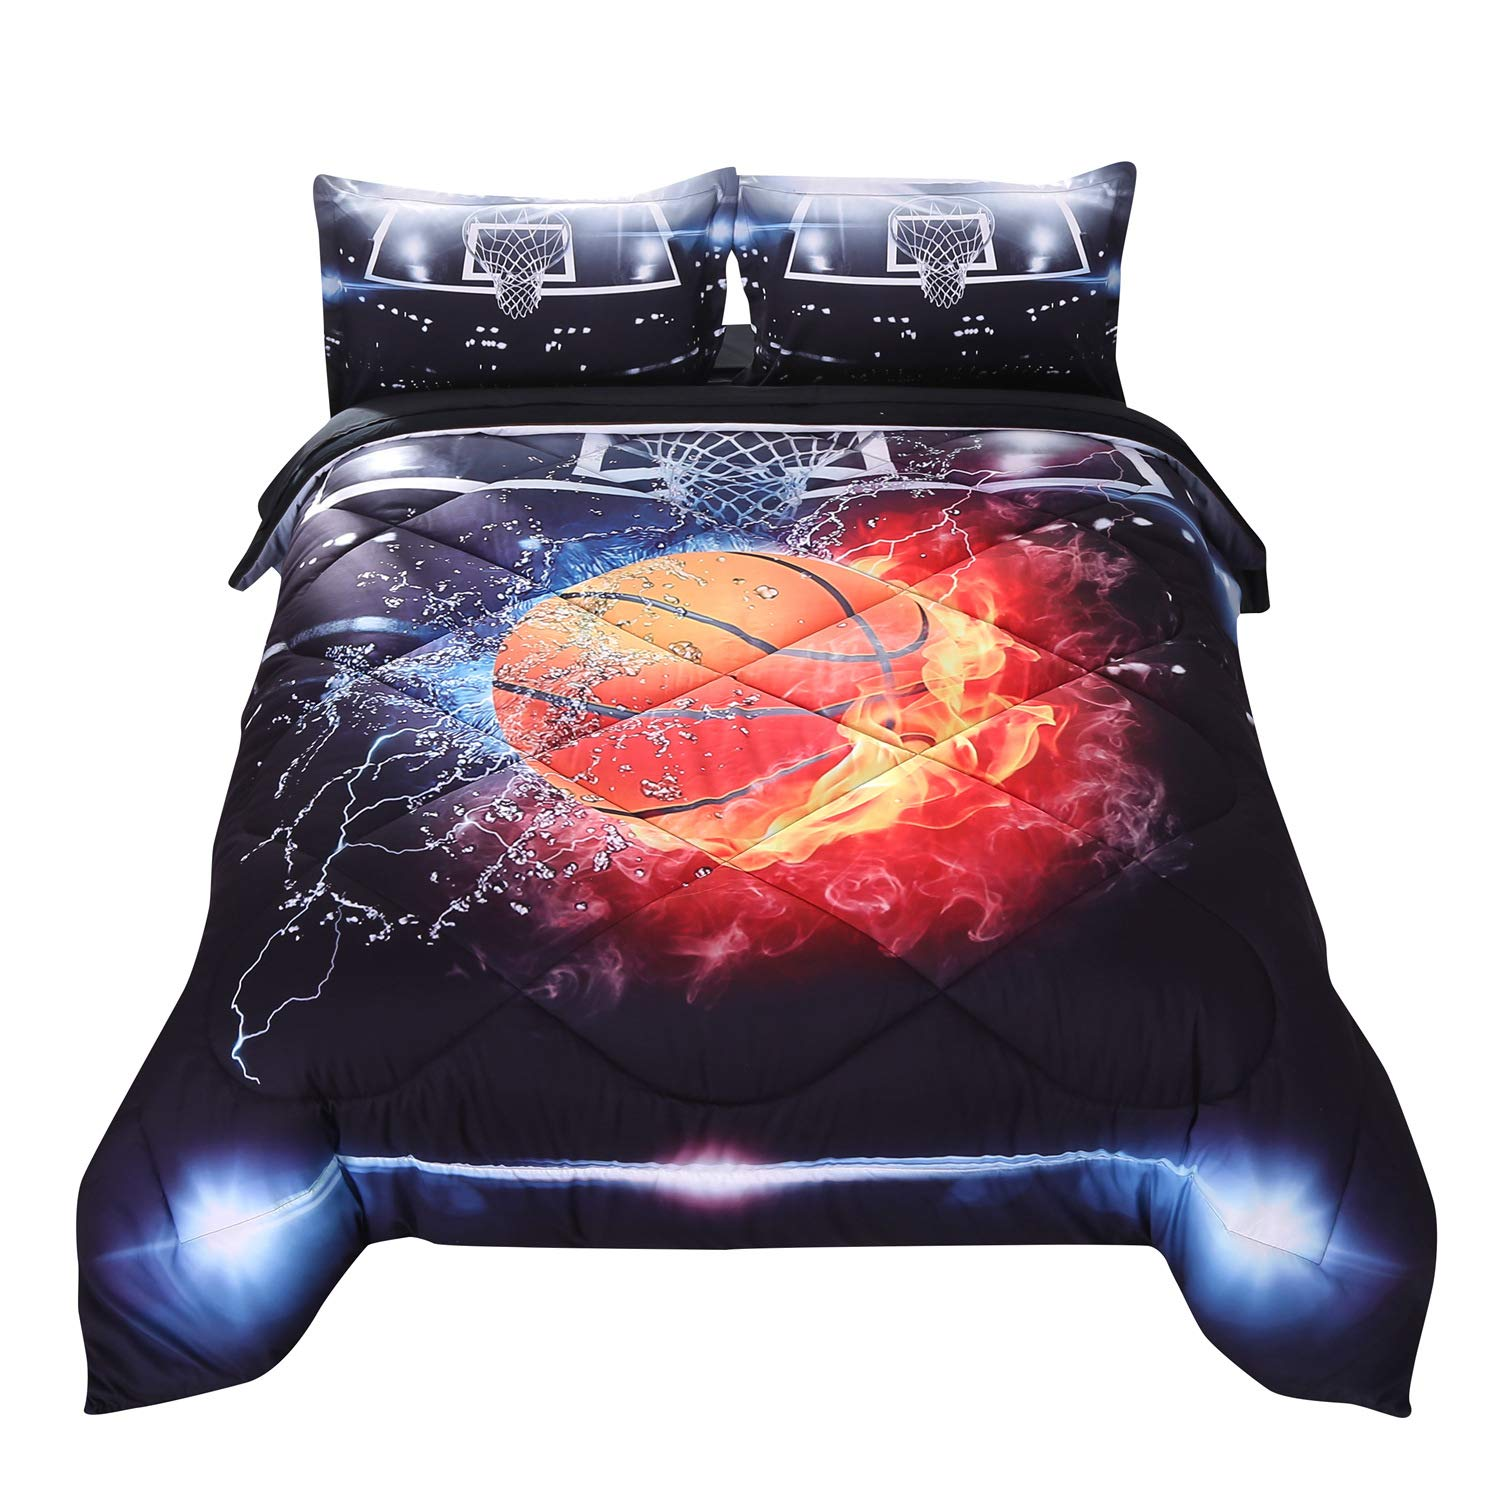 Wowelife Basketball Bedding 3D Basketball Comforter Set Queen Fire Black Pattern 5 Pieces with Comforter, Flat Sheet, Fitted Sheet and 2 Pillow Cases(Red Basketball, Queen)